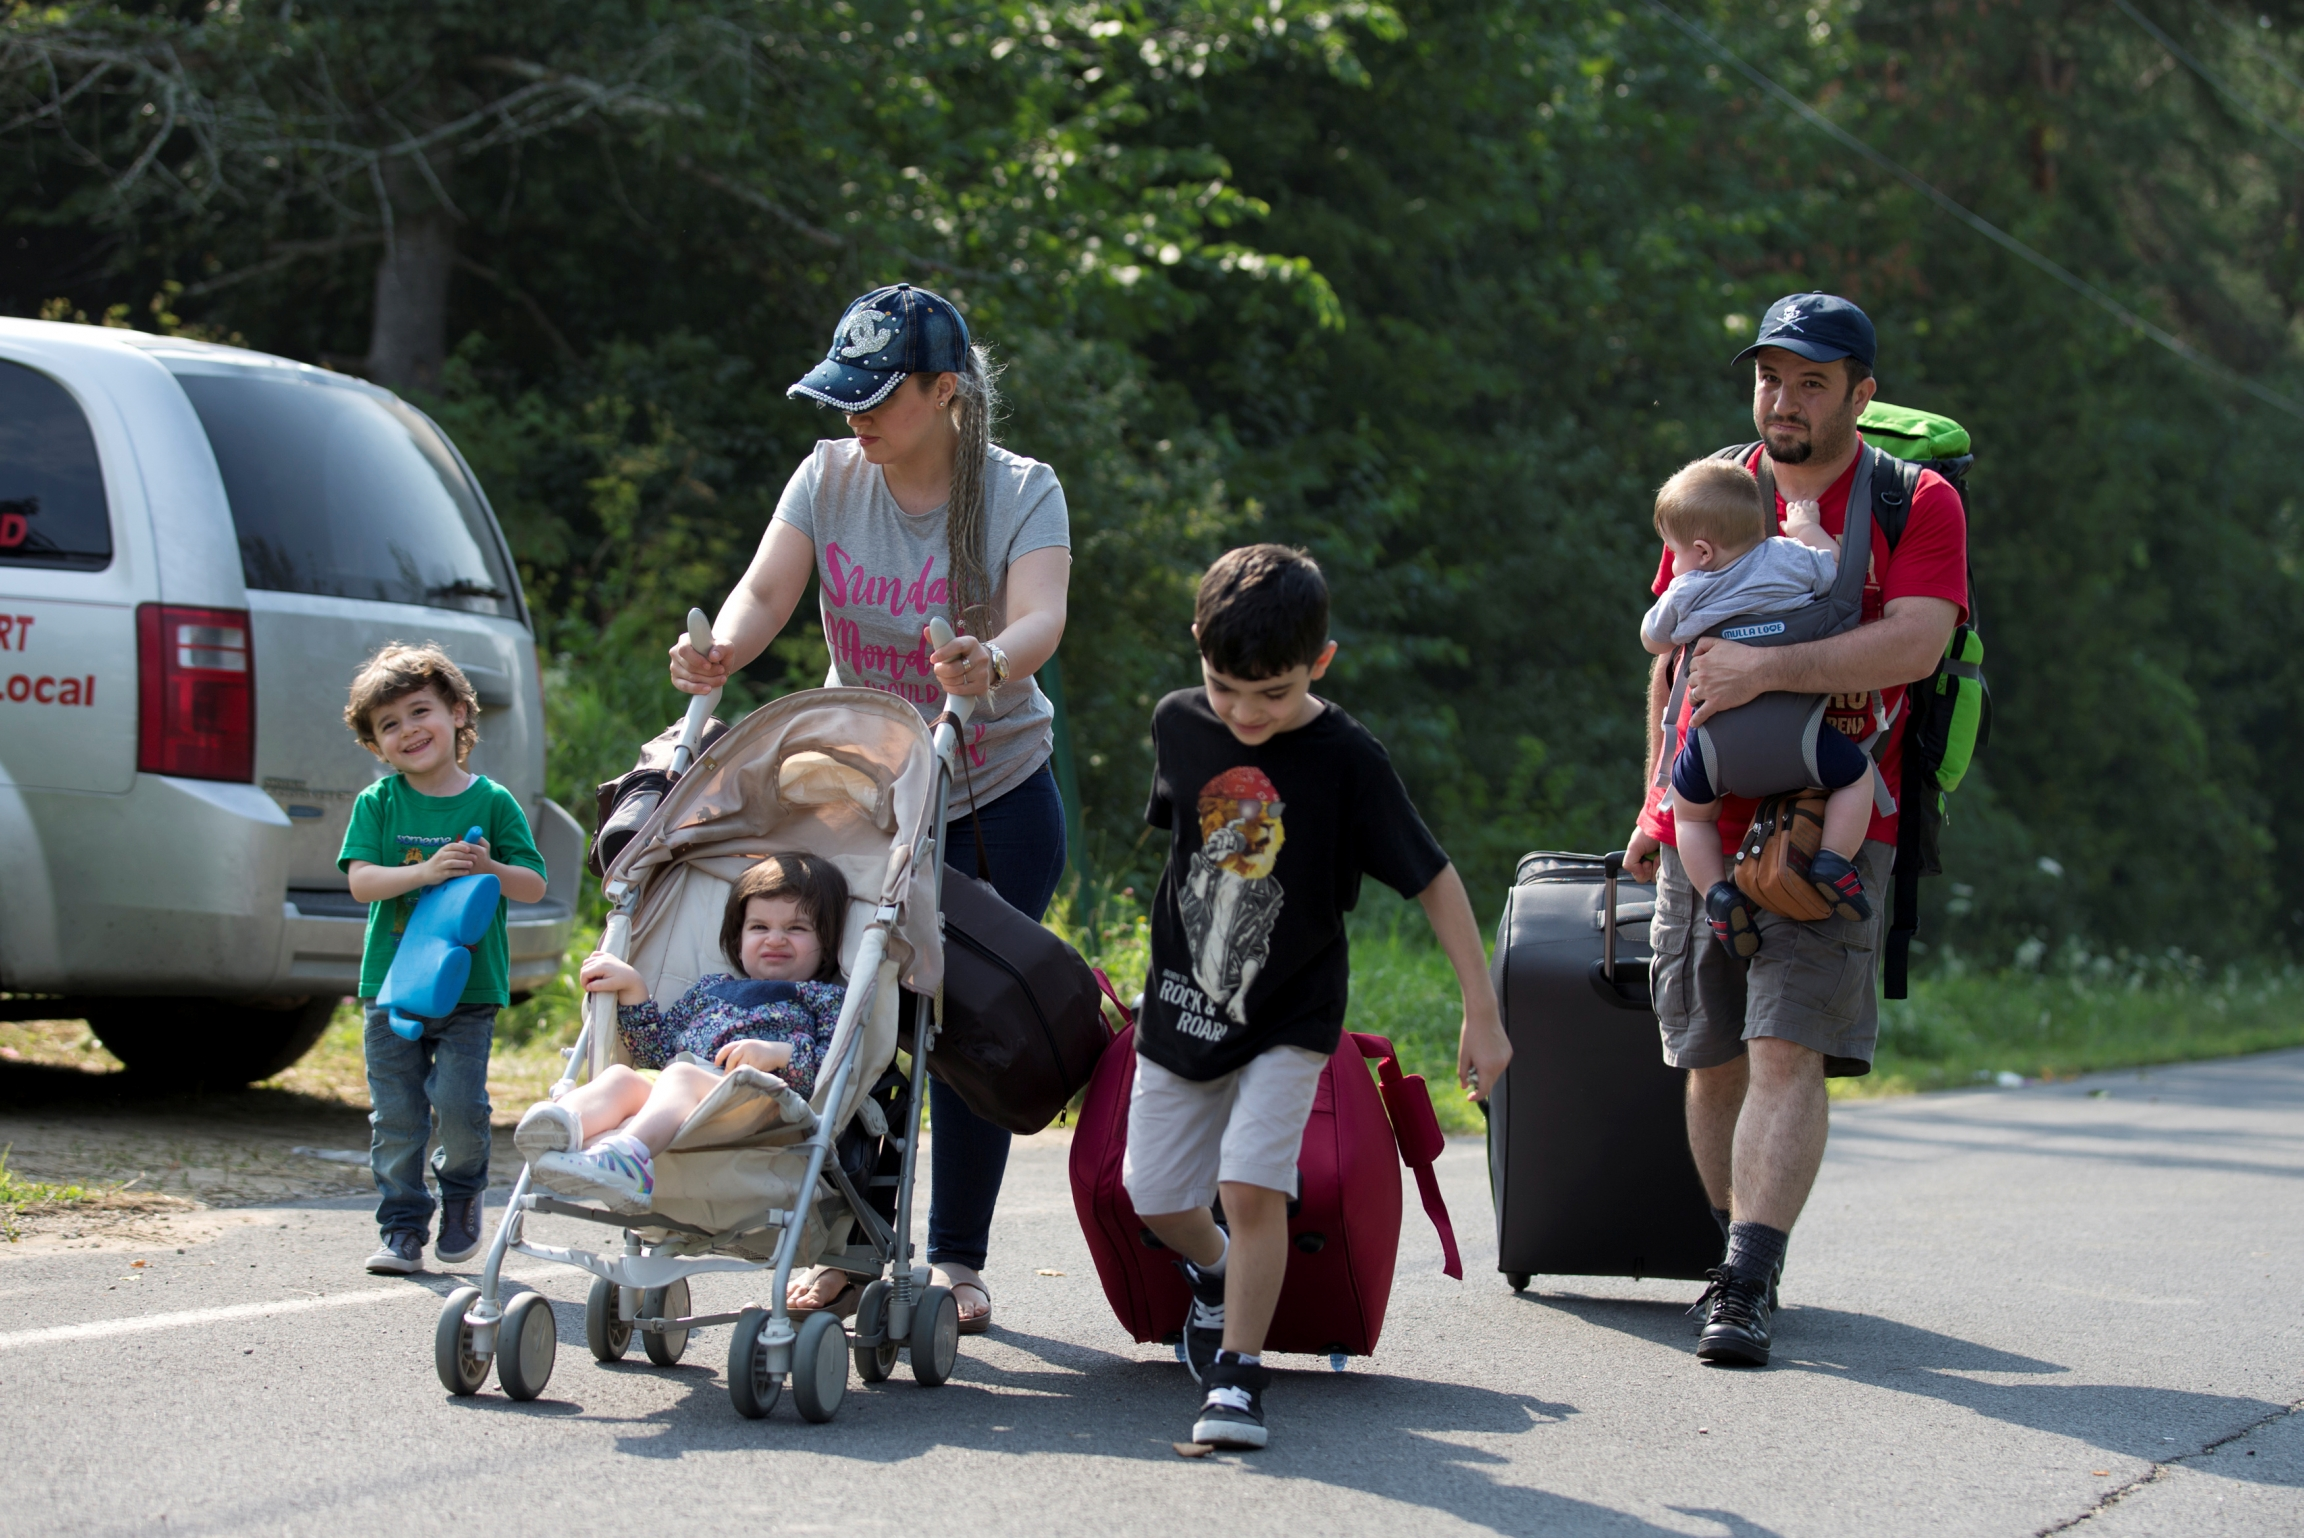 A family of four pushes stroller across a road